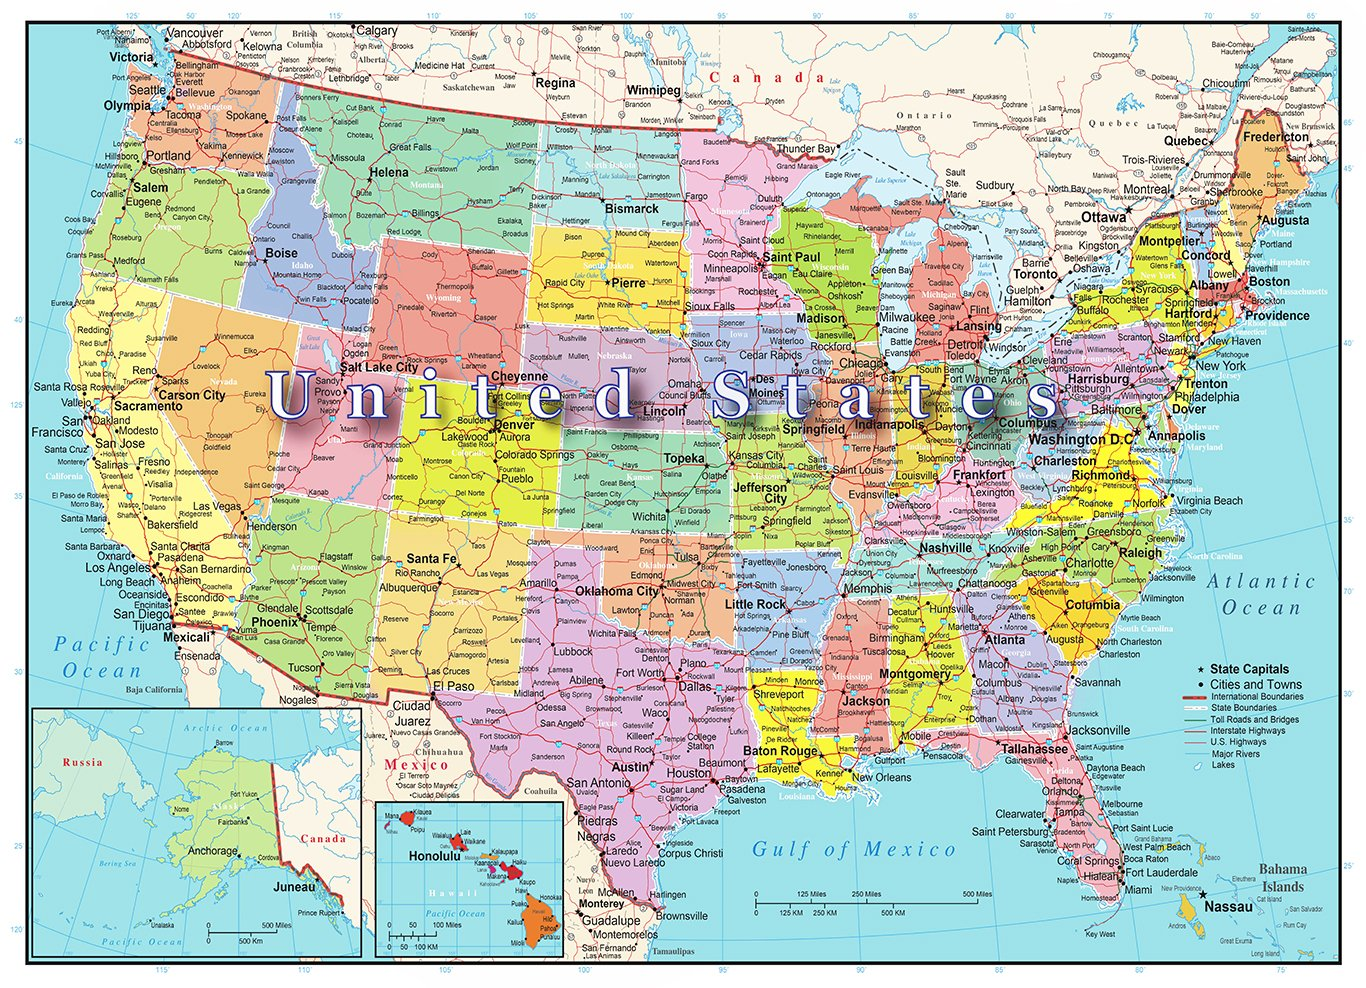 Amazoncom United States Of America Map Piece Jigsaw Puzzle - Map of united states of america with capitals